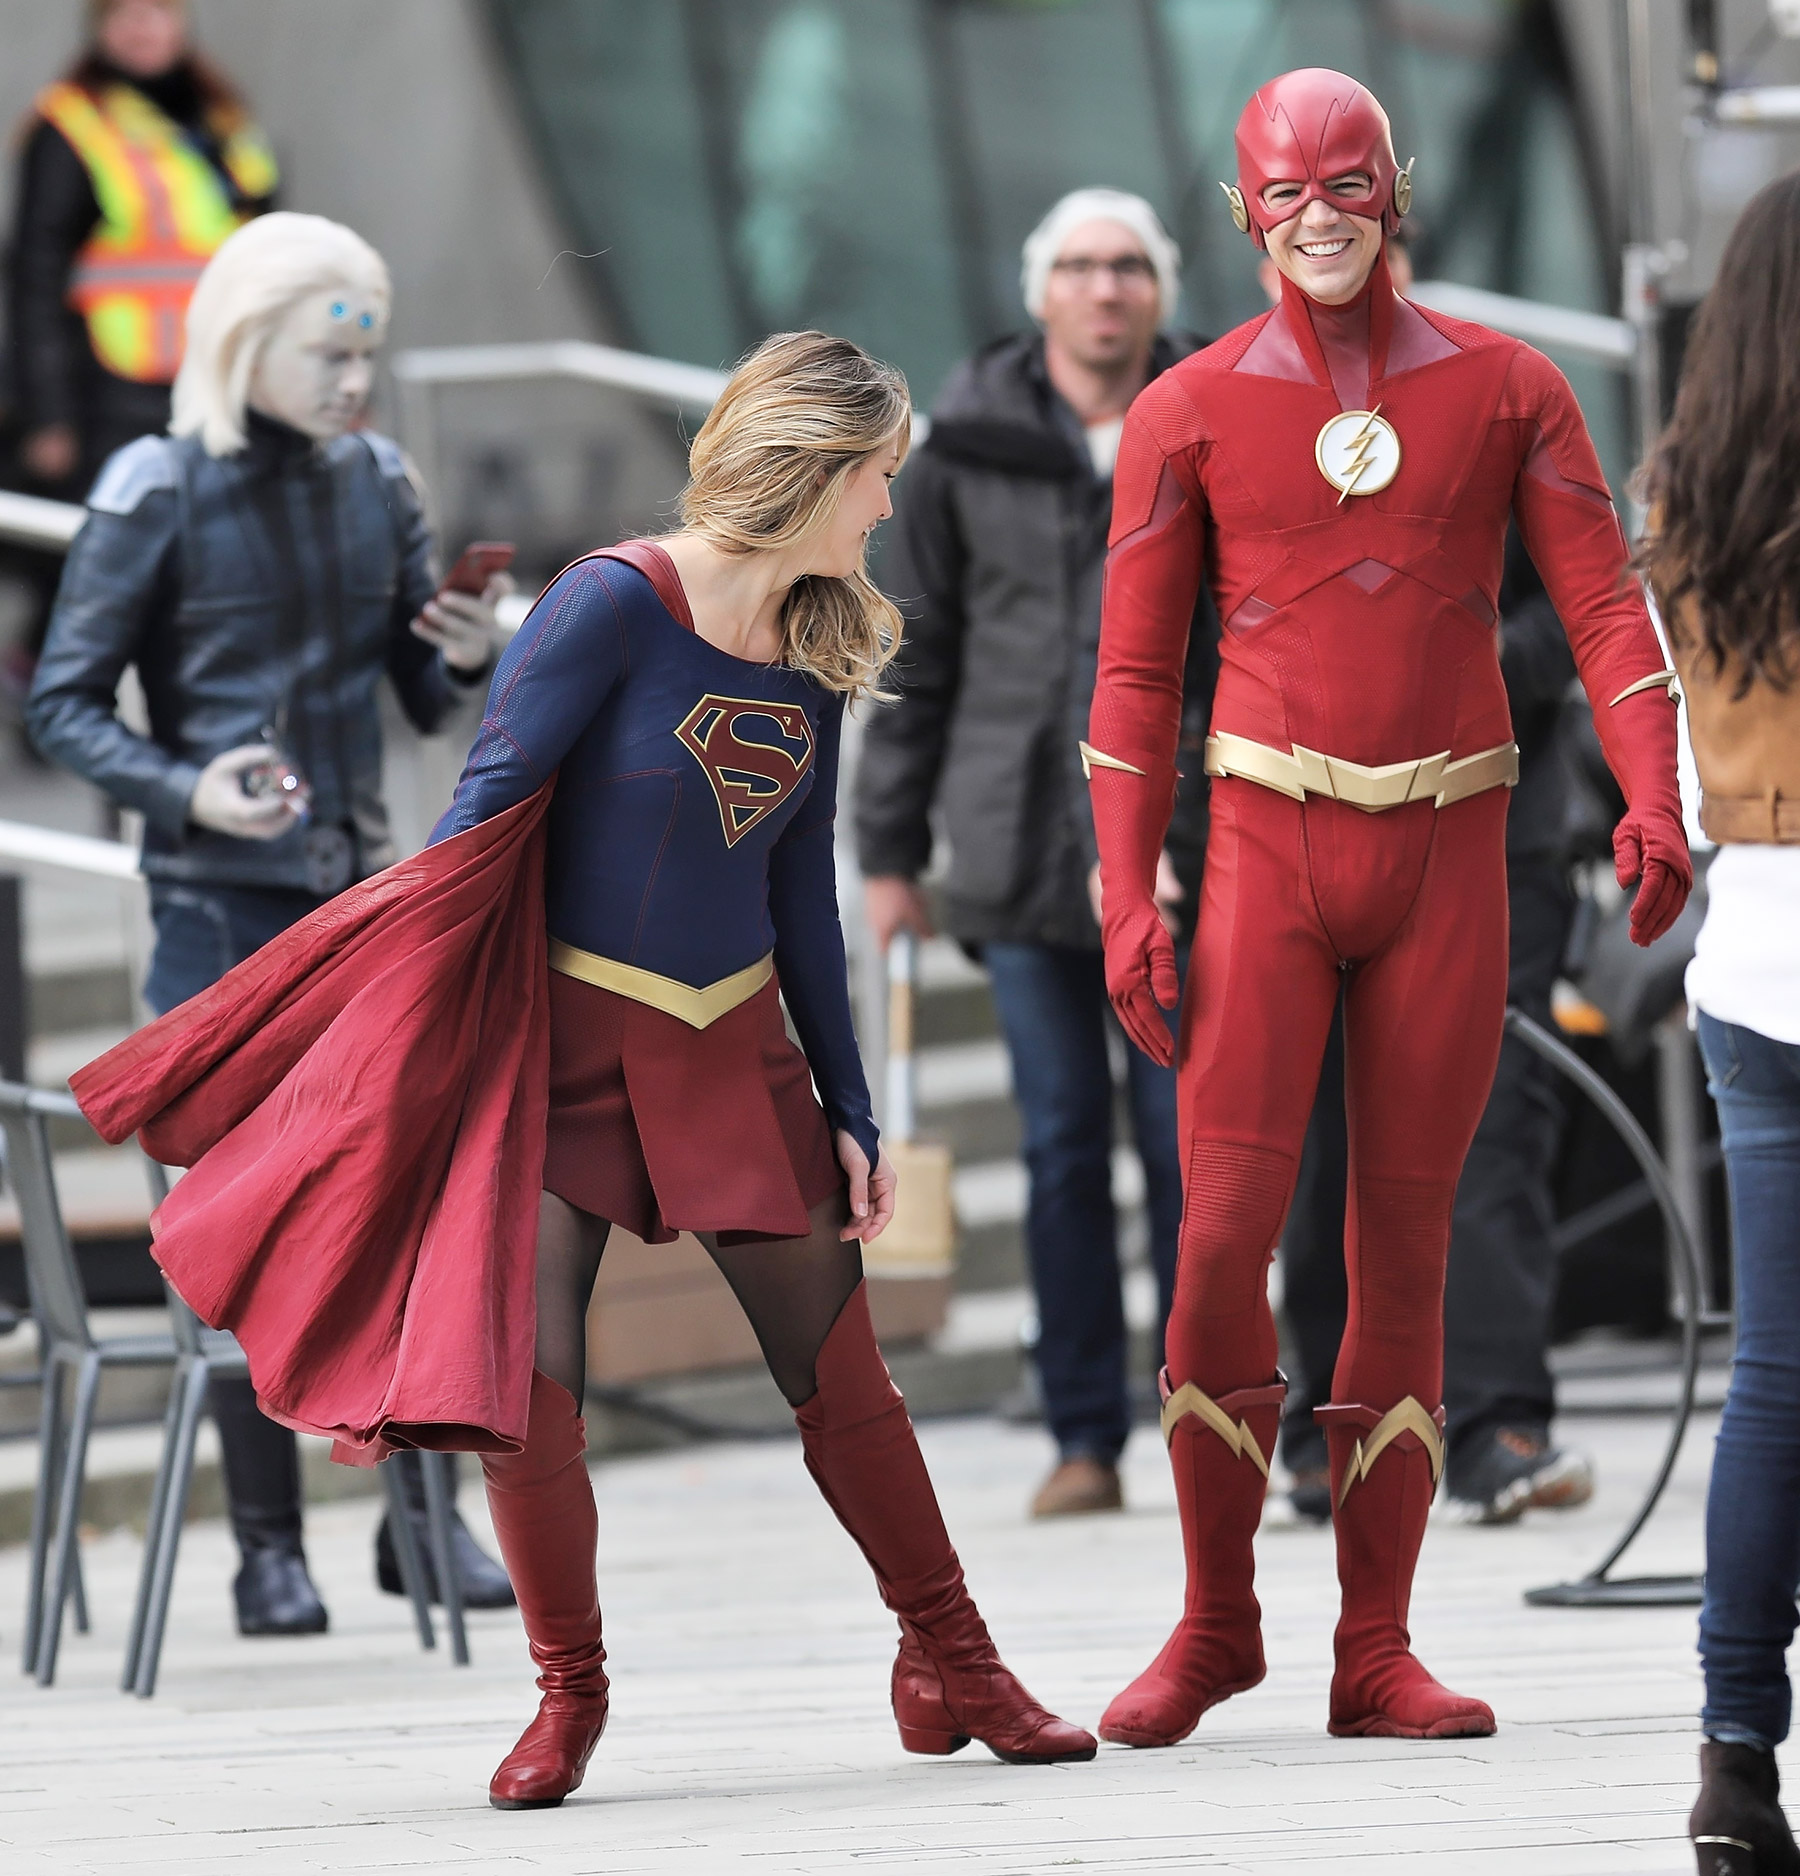 CW stars have fun while filming crossover event on Supergirl set